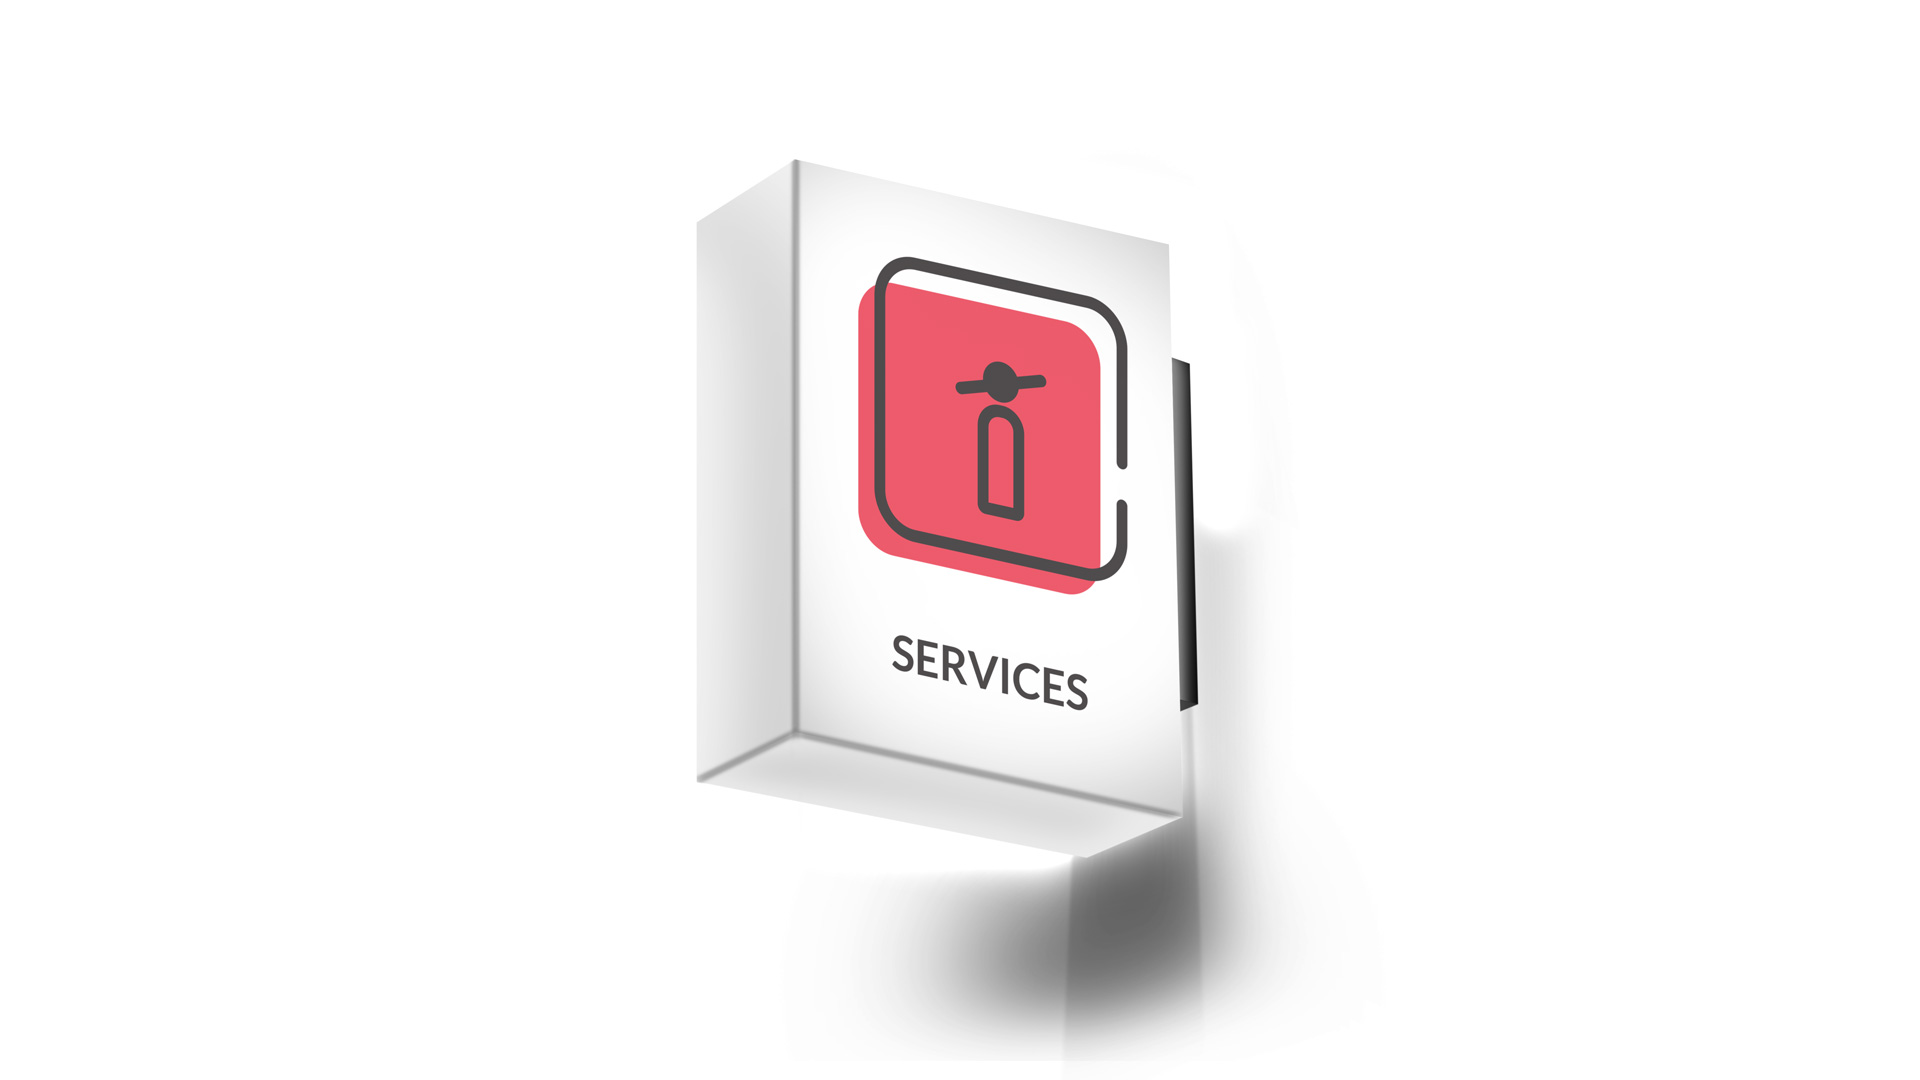 services-agency-icon-design